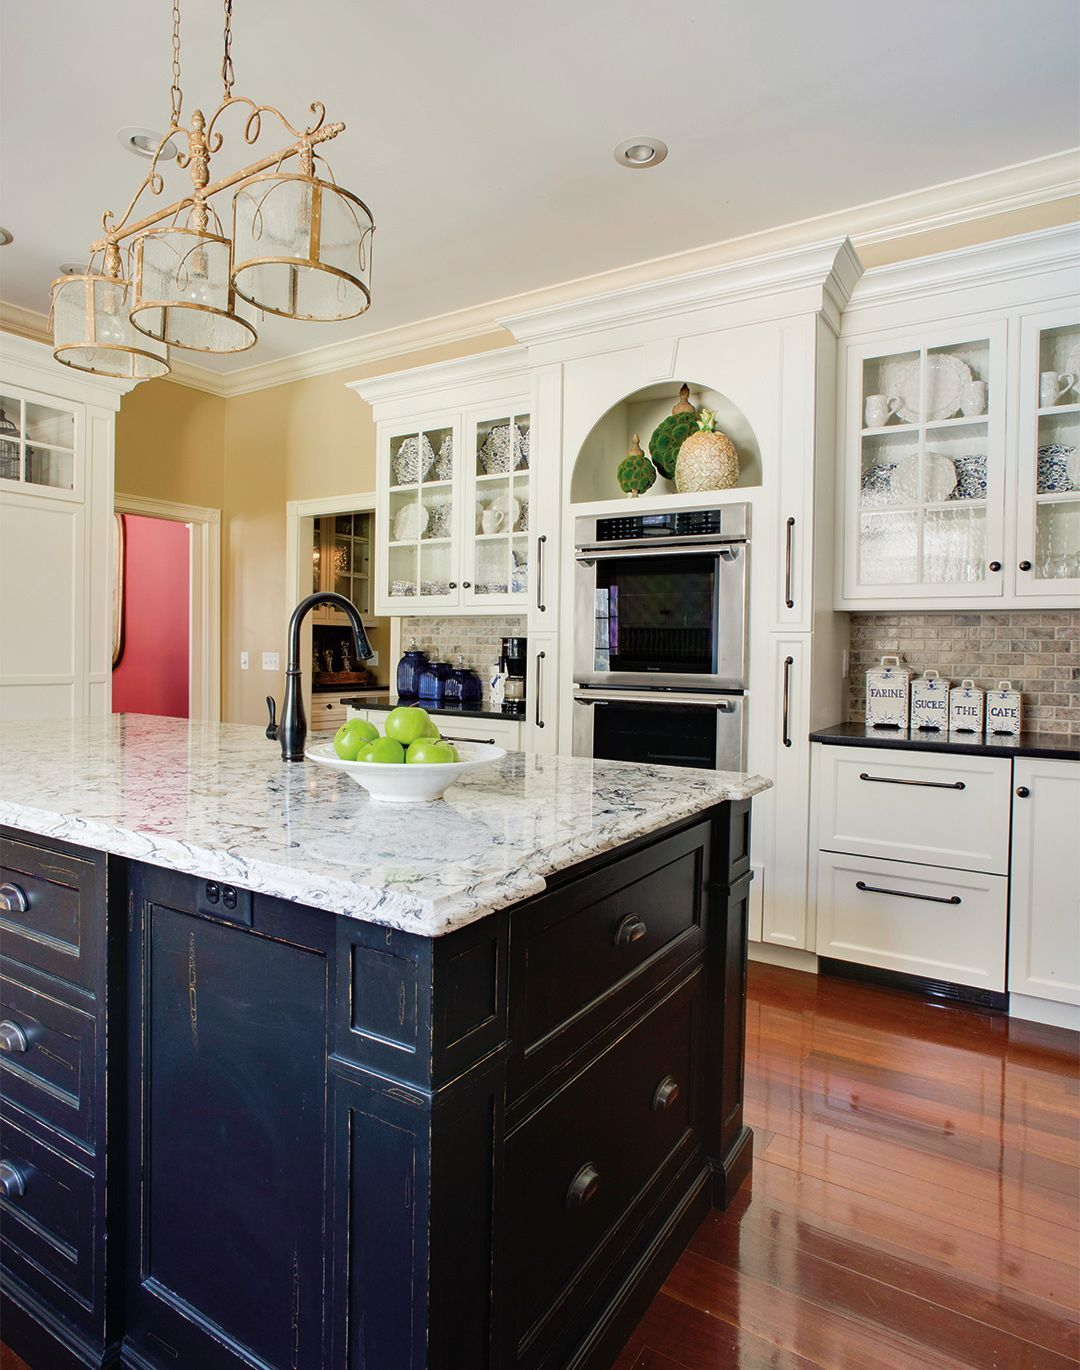 Kitchen Cabinetry With Rustic Elegance Plain Fancy Cabinetry Traditional Kitchen Traditional Kitchen Cabinets Custom Cabinetry